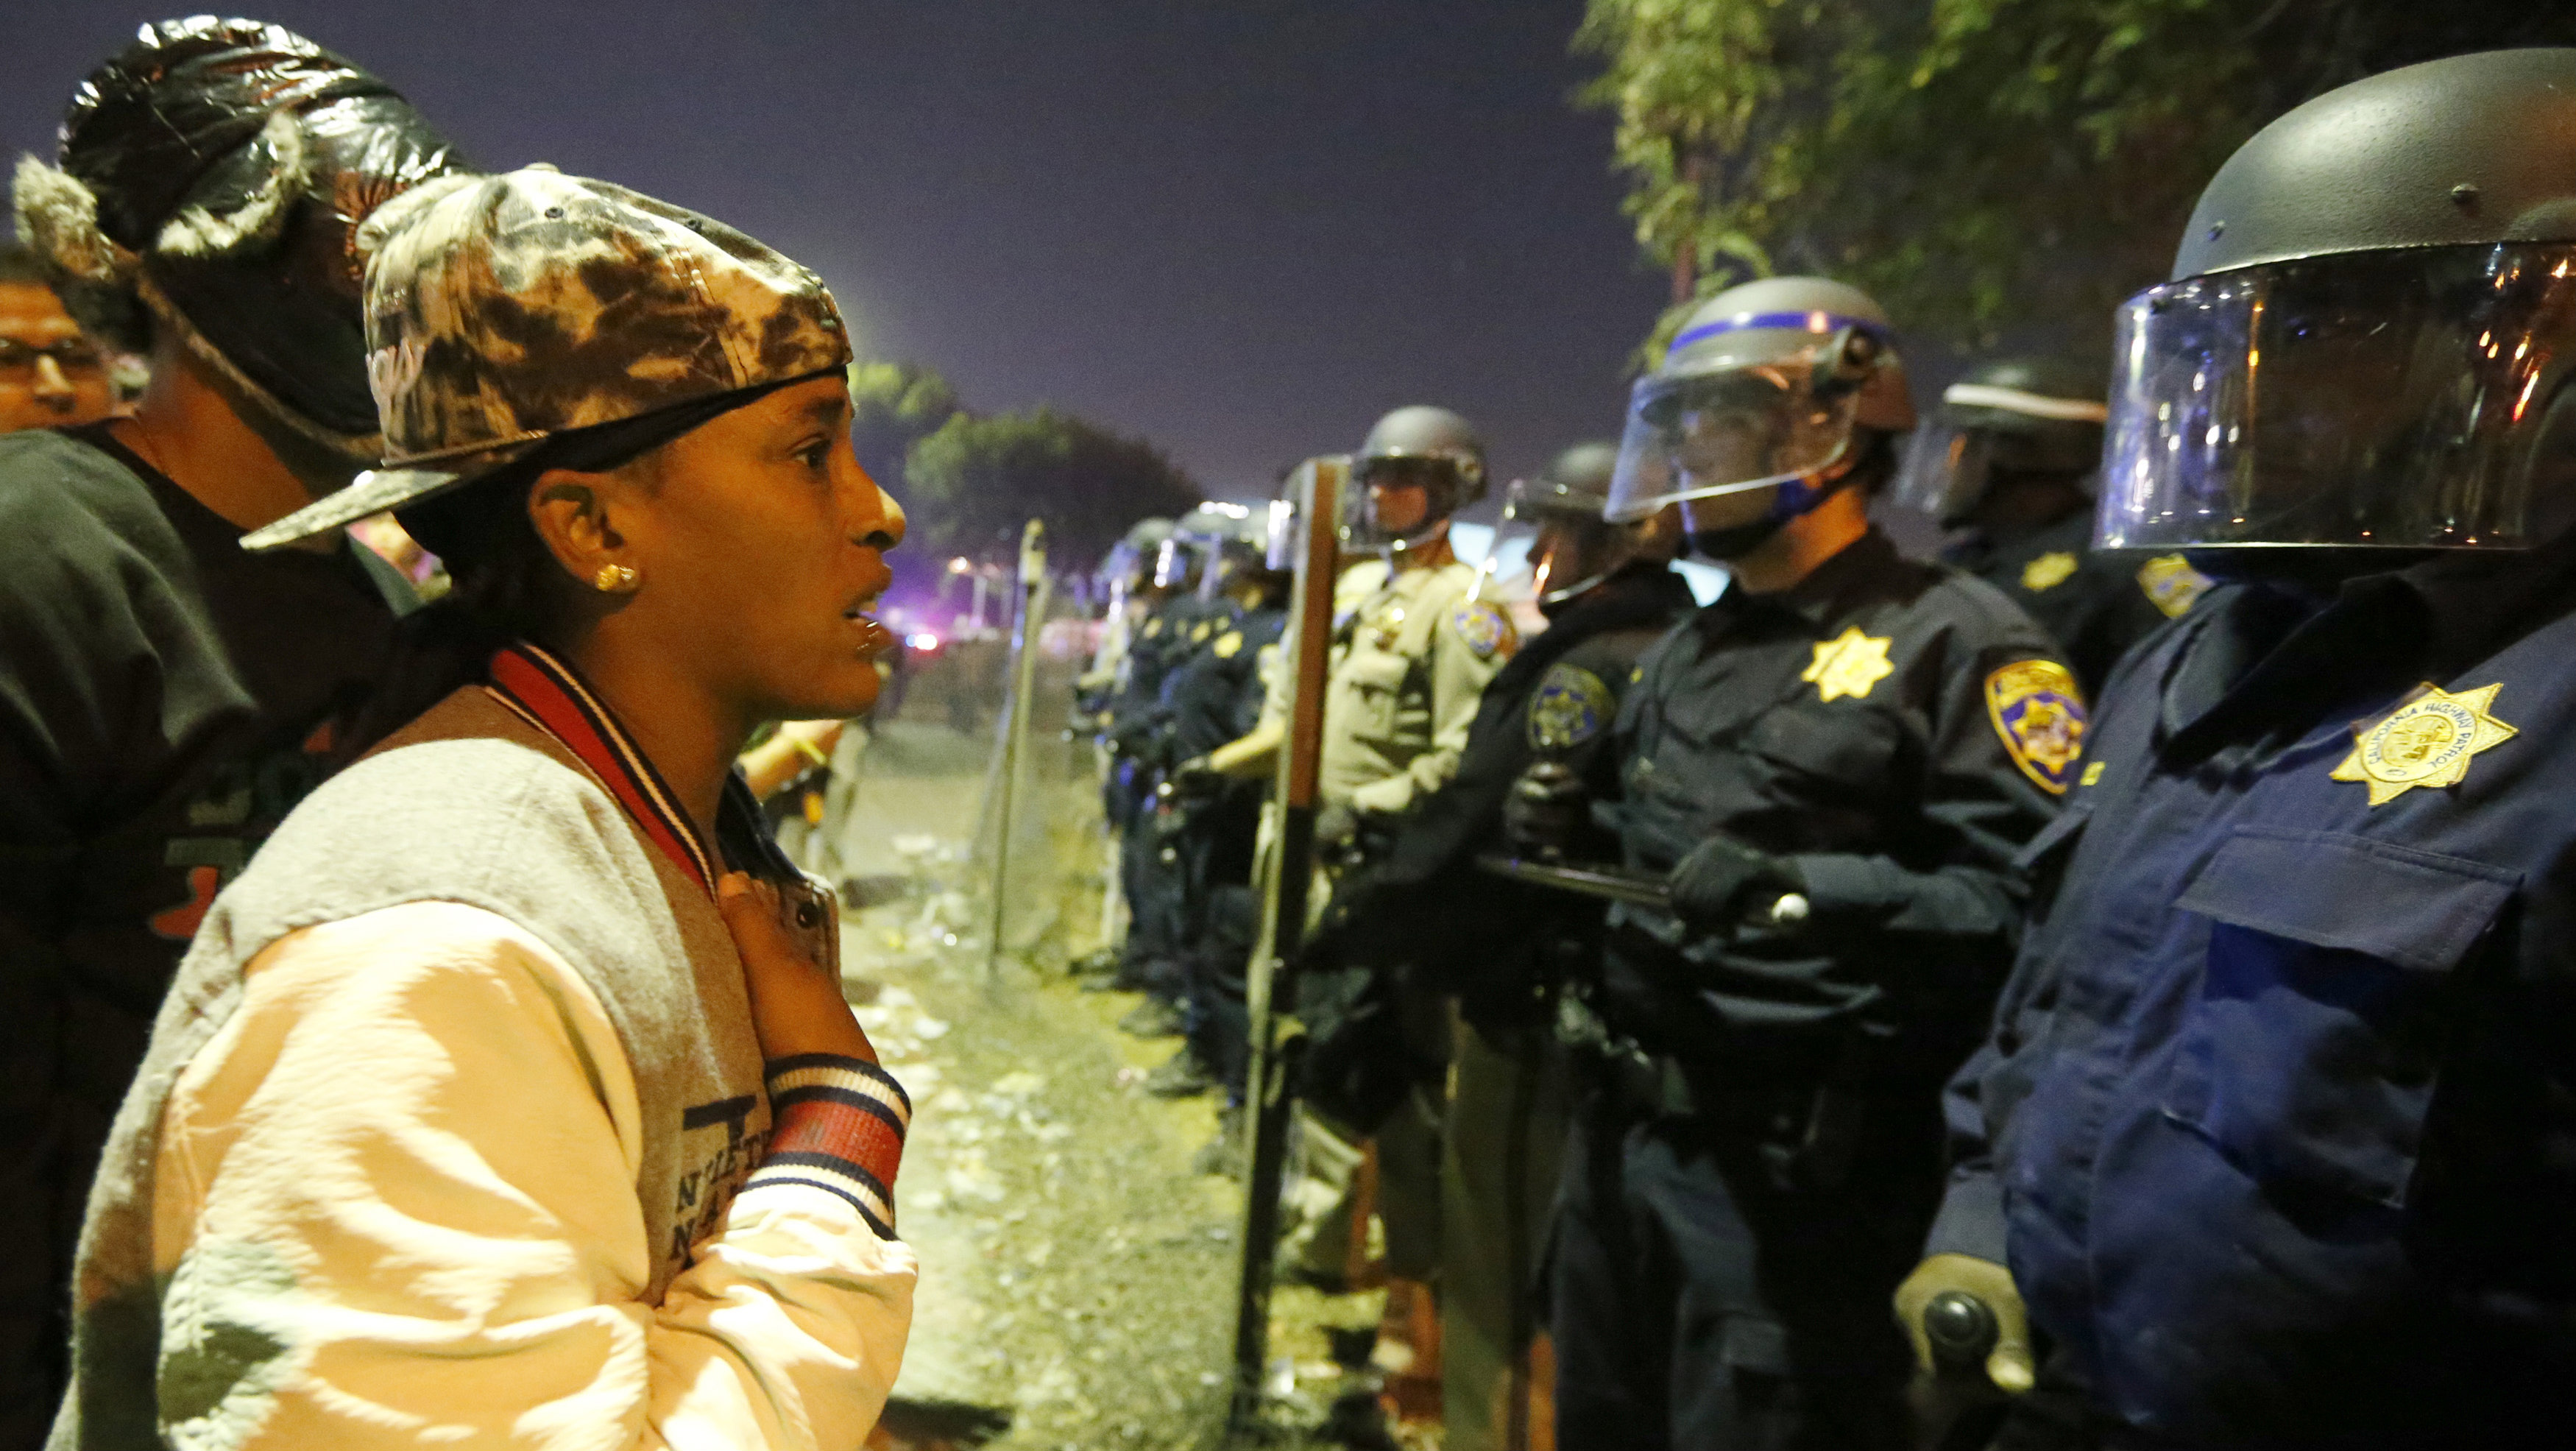 A protester talks to police during a demonstration in Los Angeles, California November 24, 2014, following the grand jury decision in the shooting of Michael Brown in Ferguson, Missouri.